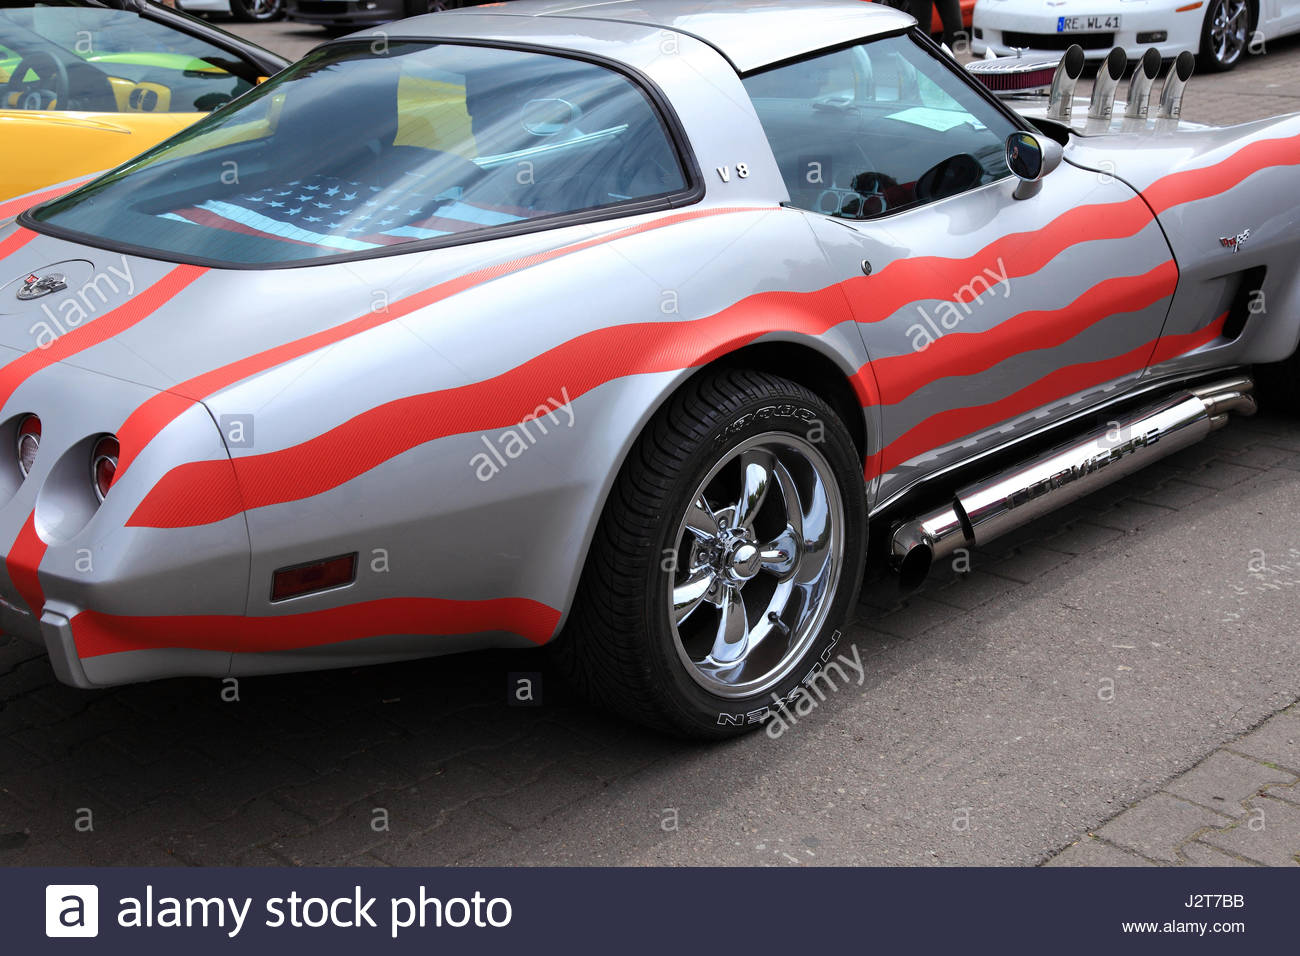 1979 corvette stock photos 1979 corvette stock images alamy